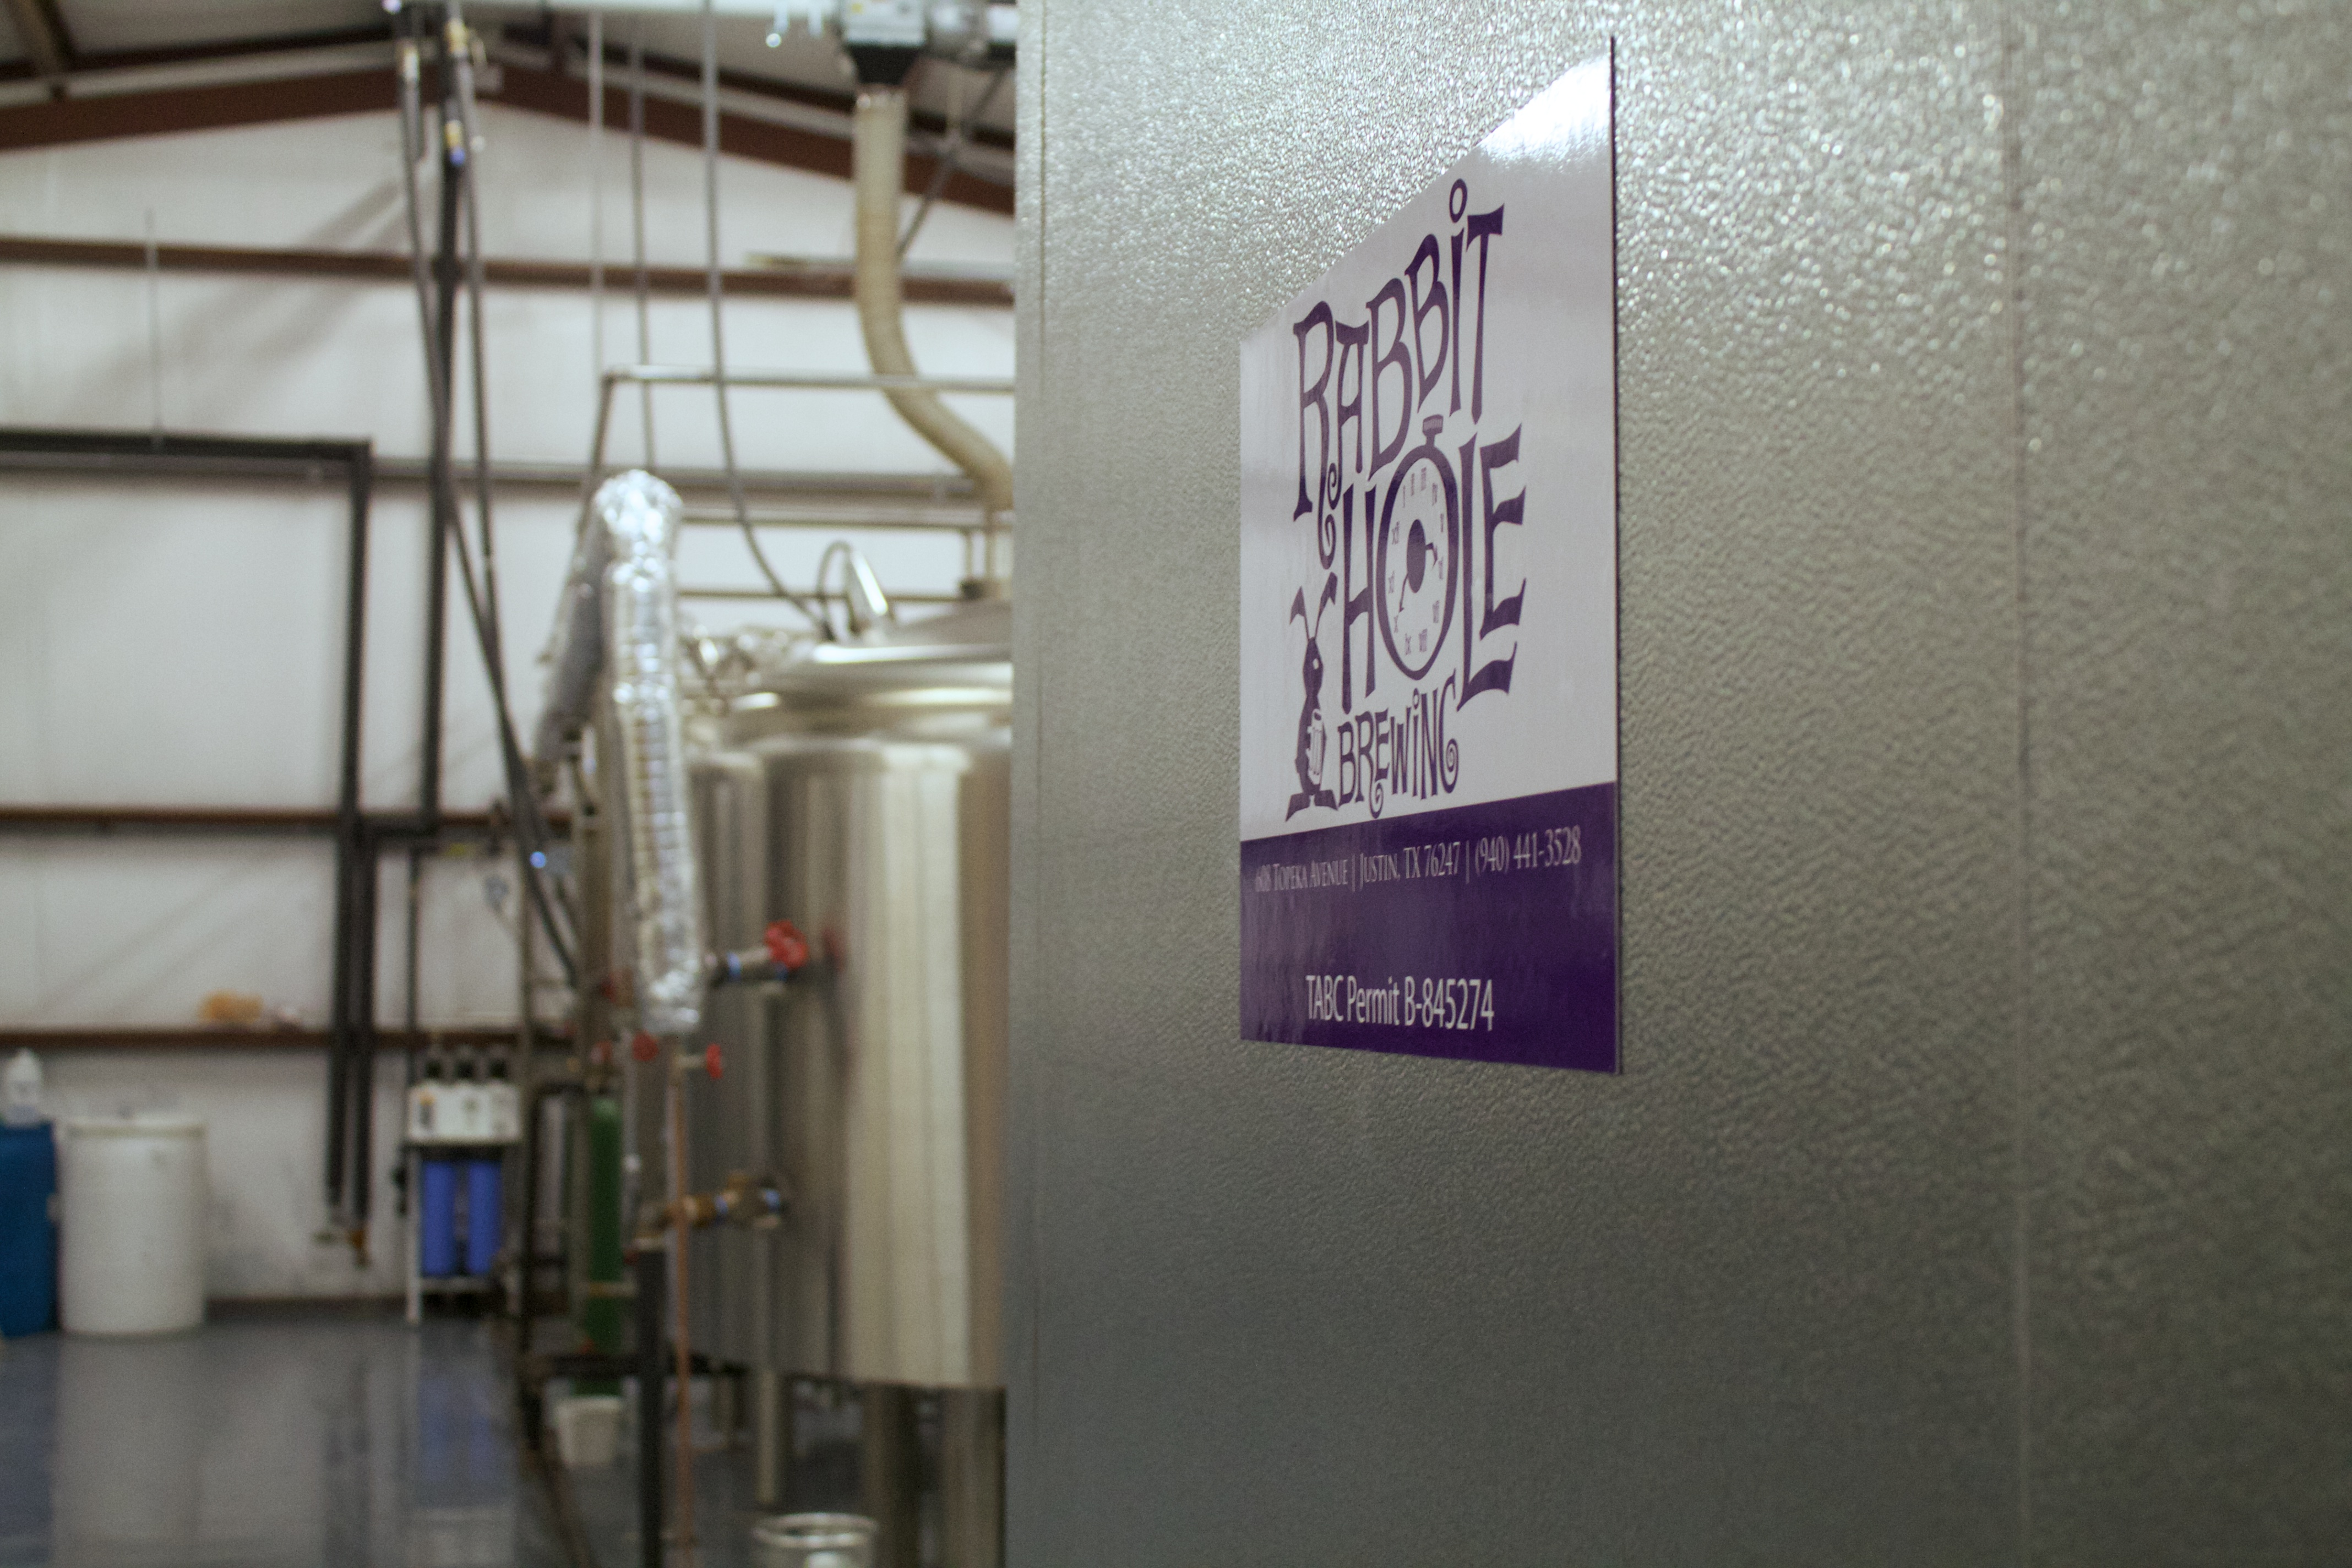 A look inside Rabbit Hole Brewing in Justin,Texas.